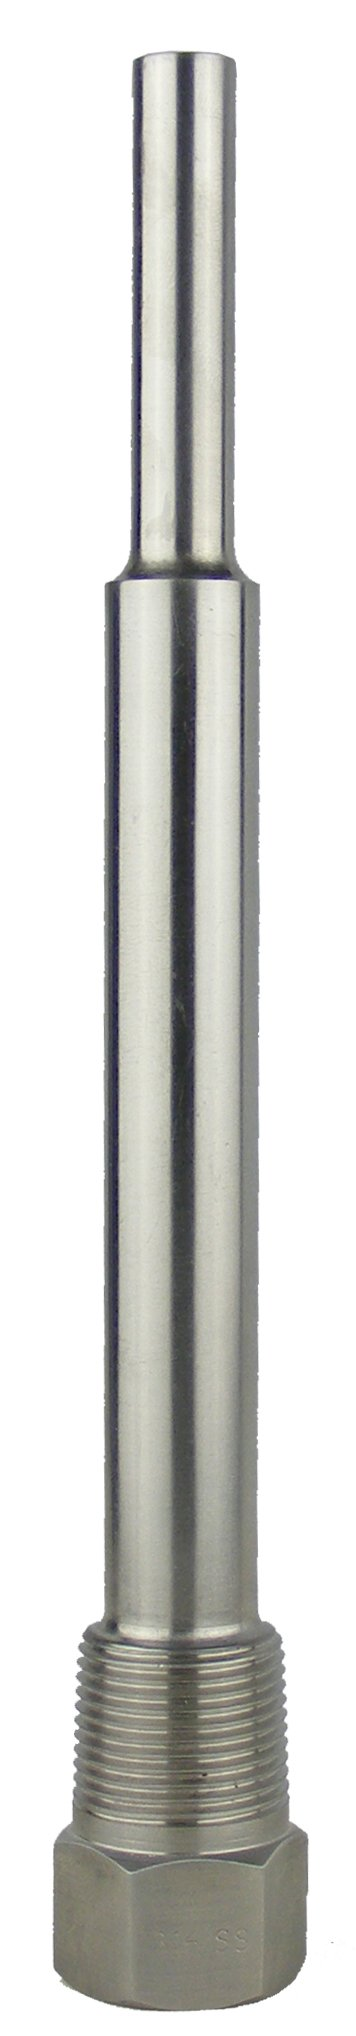 REOTEMP ST9316 316 Stainless Steel Threaded Thermowell, 9'' Stem Length, For Bimetal Thermometer